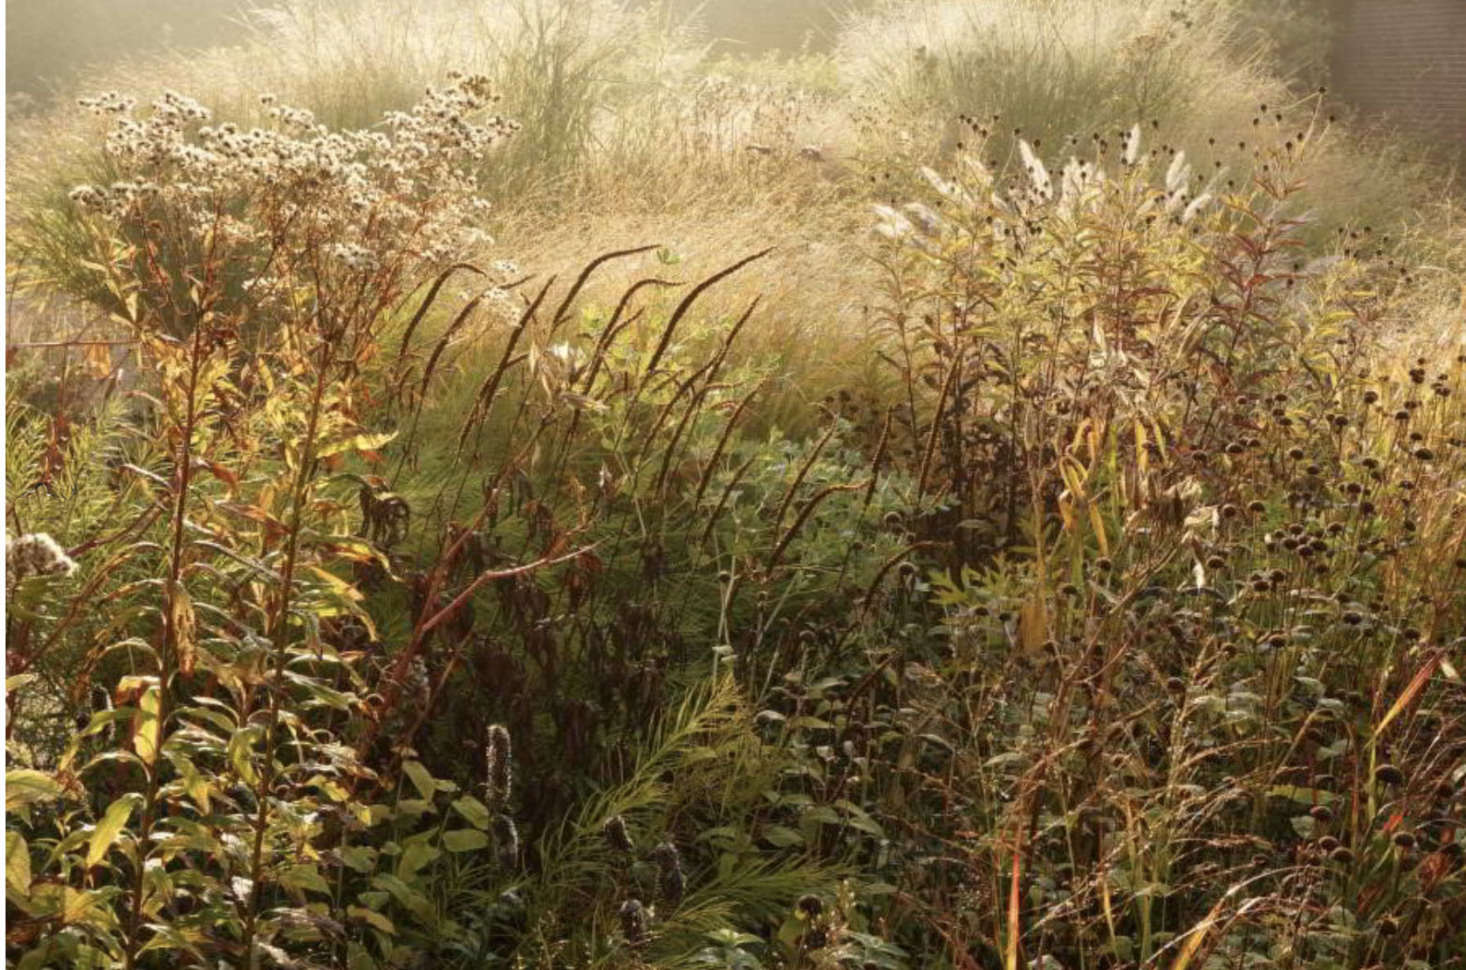 Perhaps the biggest challenges of capturing the magic of a garden on film are the everchanging weather and the ephemeral nature of plants.